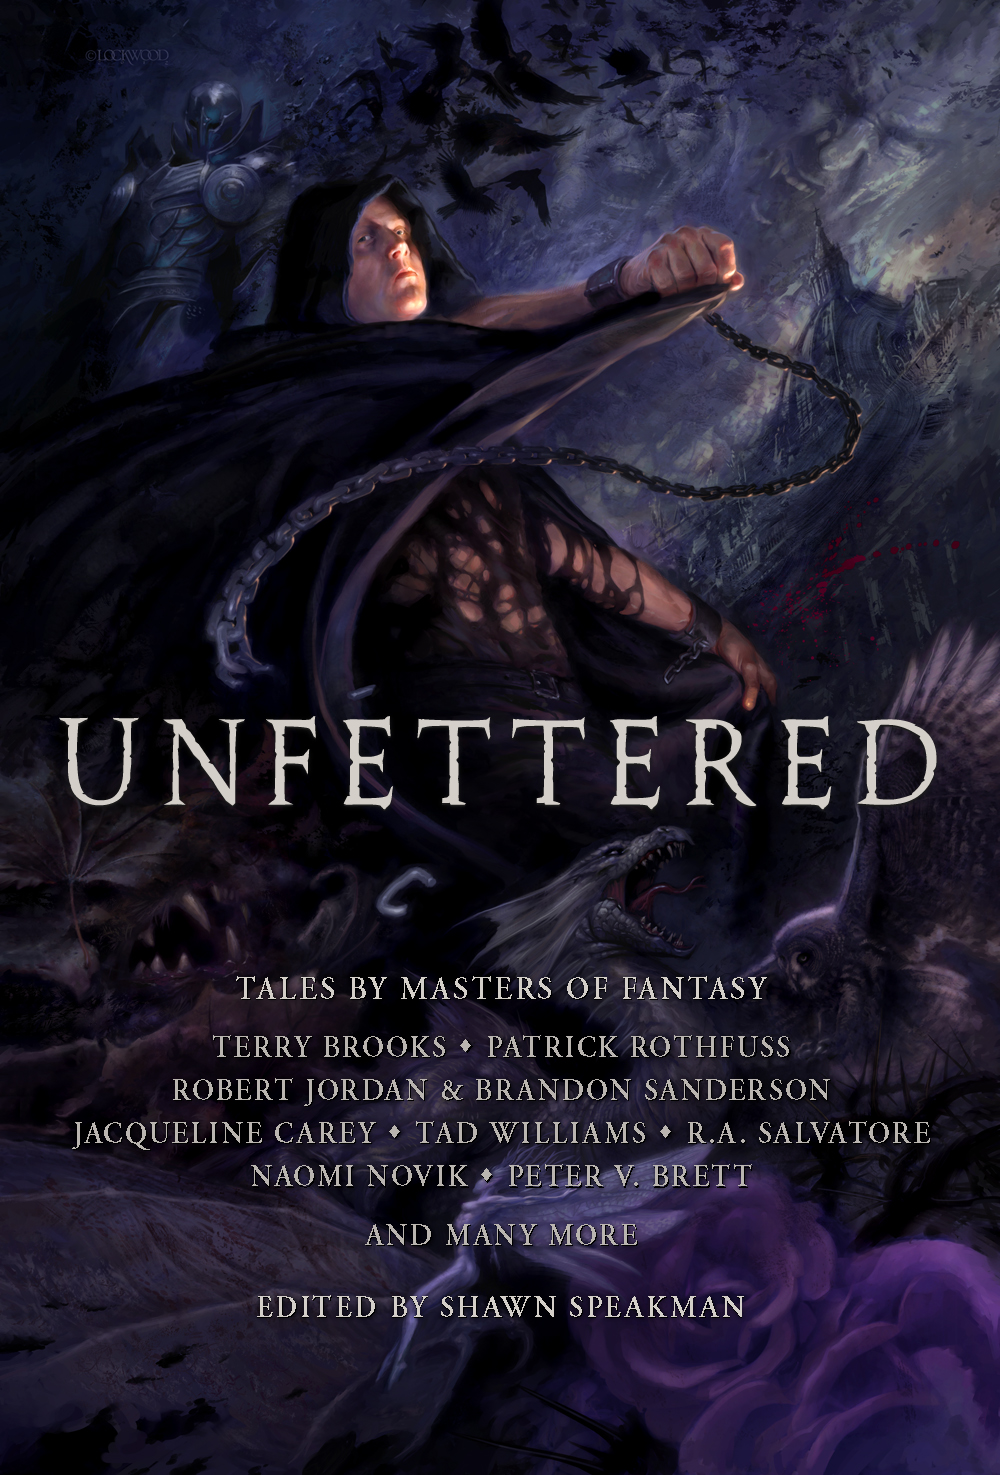 Unfettered: A fantasy anthology edited by Shawn Speakman